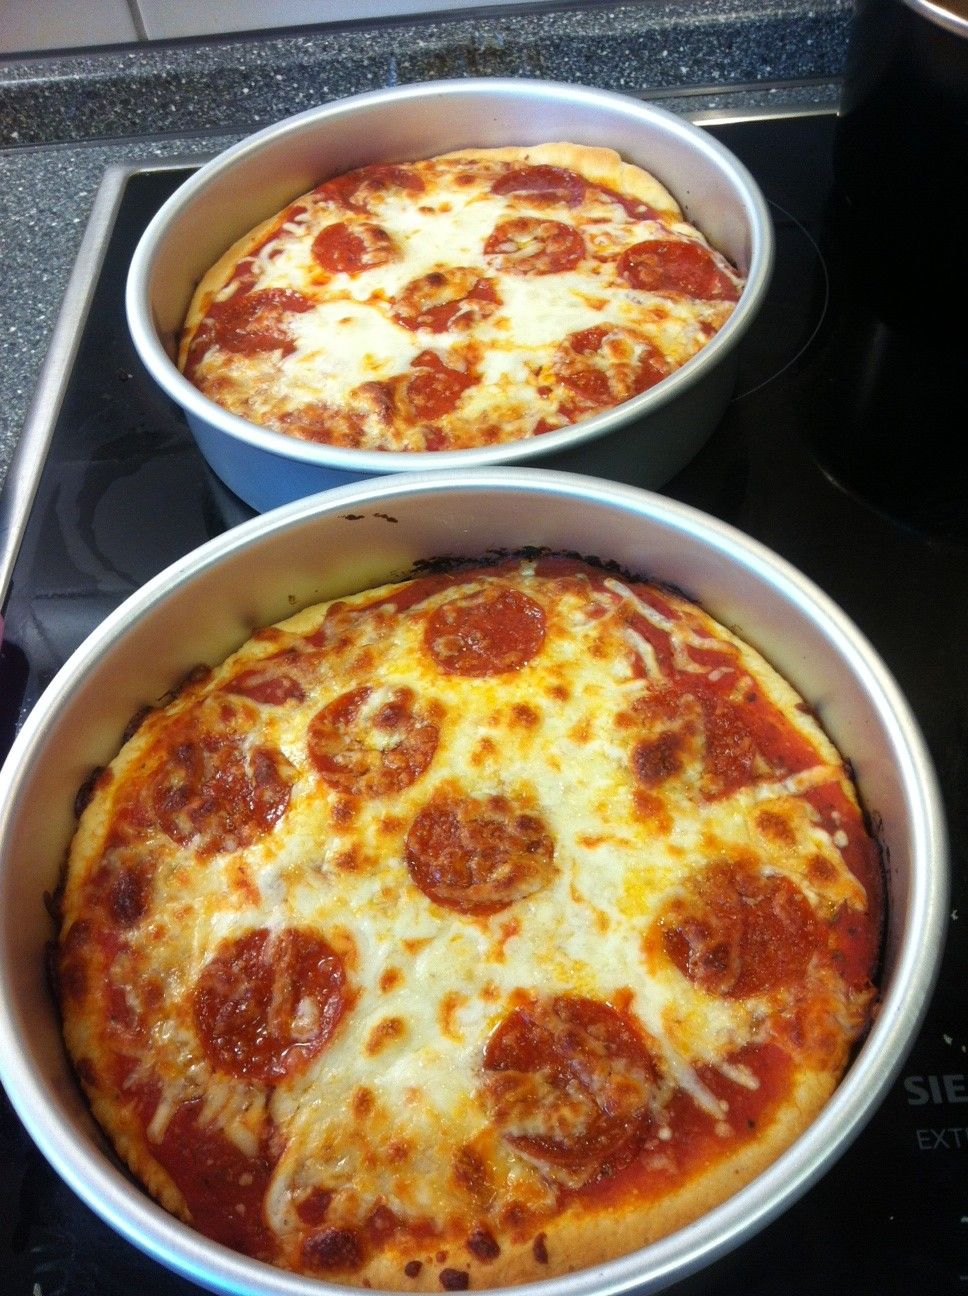 Copycat Pizza Hut Personal Pan Pizzas It Is An Exact Copy Of The